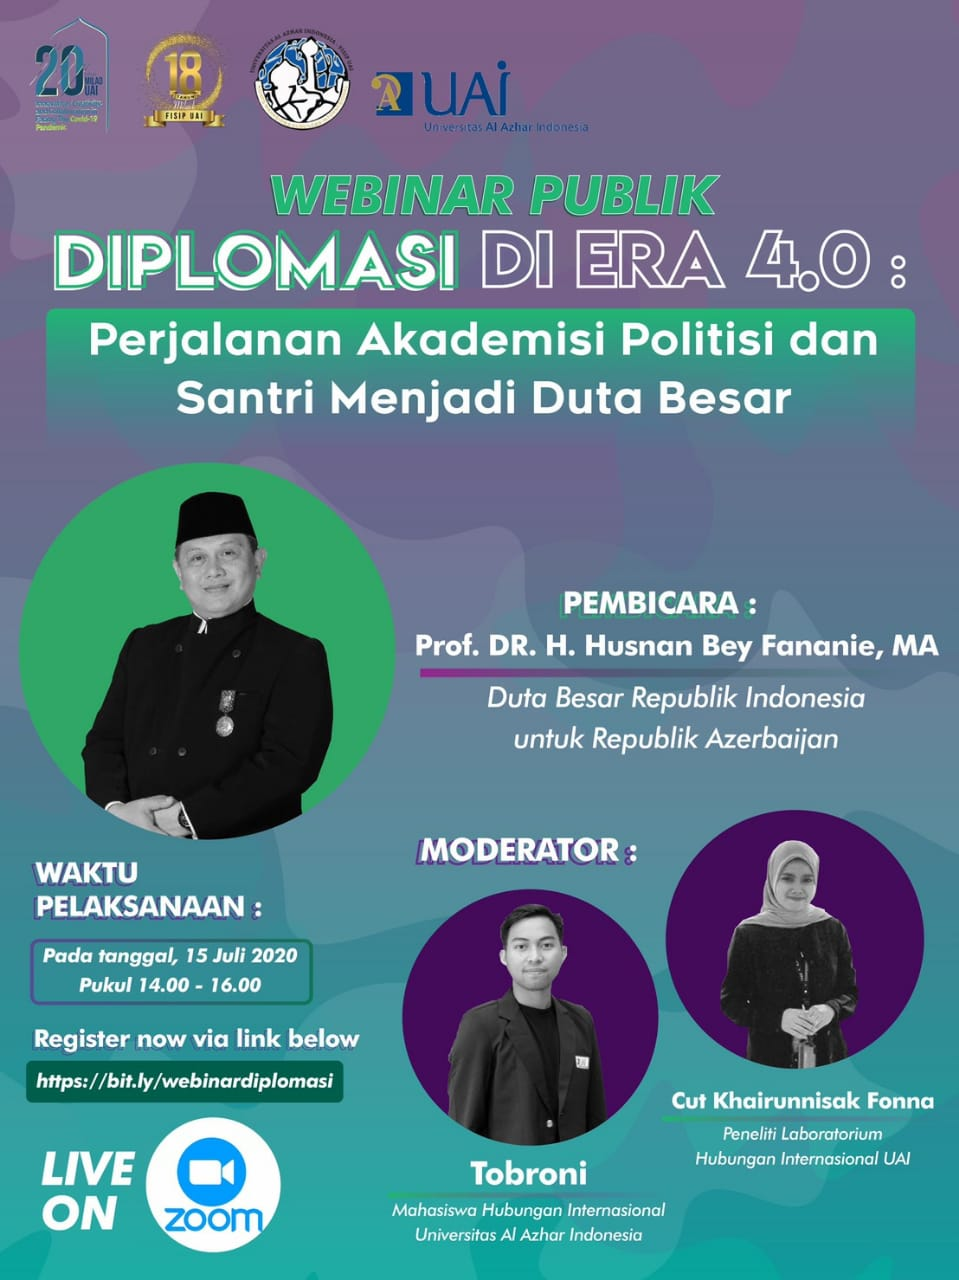 Tips To Success By Prof. DR. H. Husnan Bey Fananie, MA., The Former Ambassador Of The Republic Of Indonesia To The Republic Of Azerbaijan